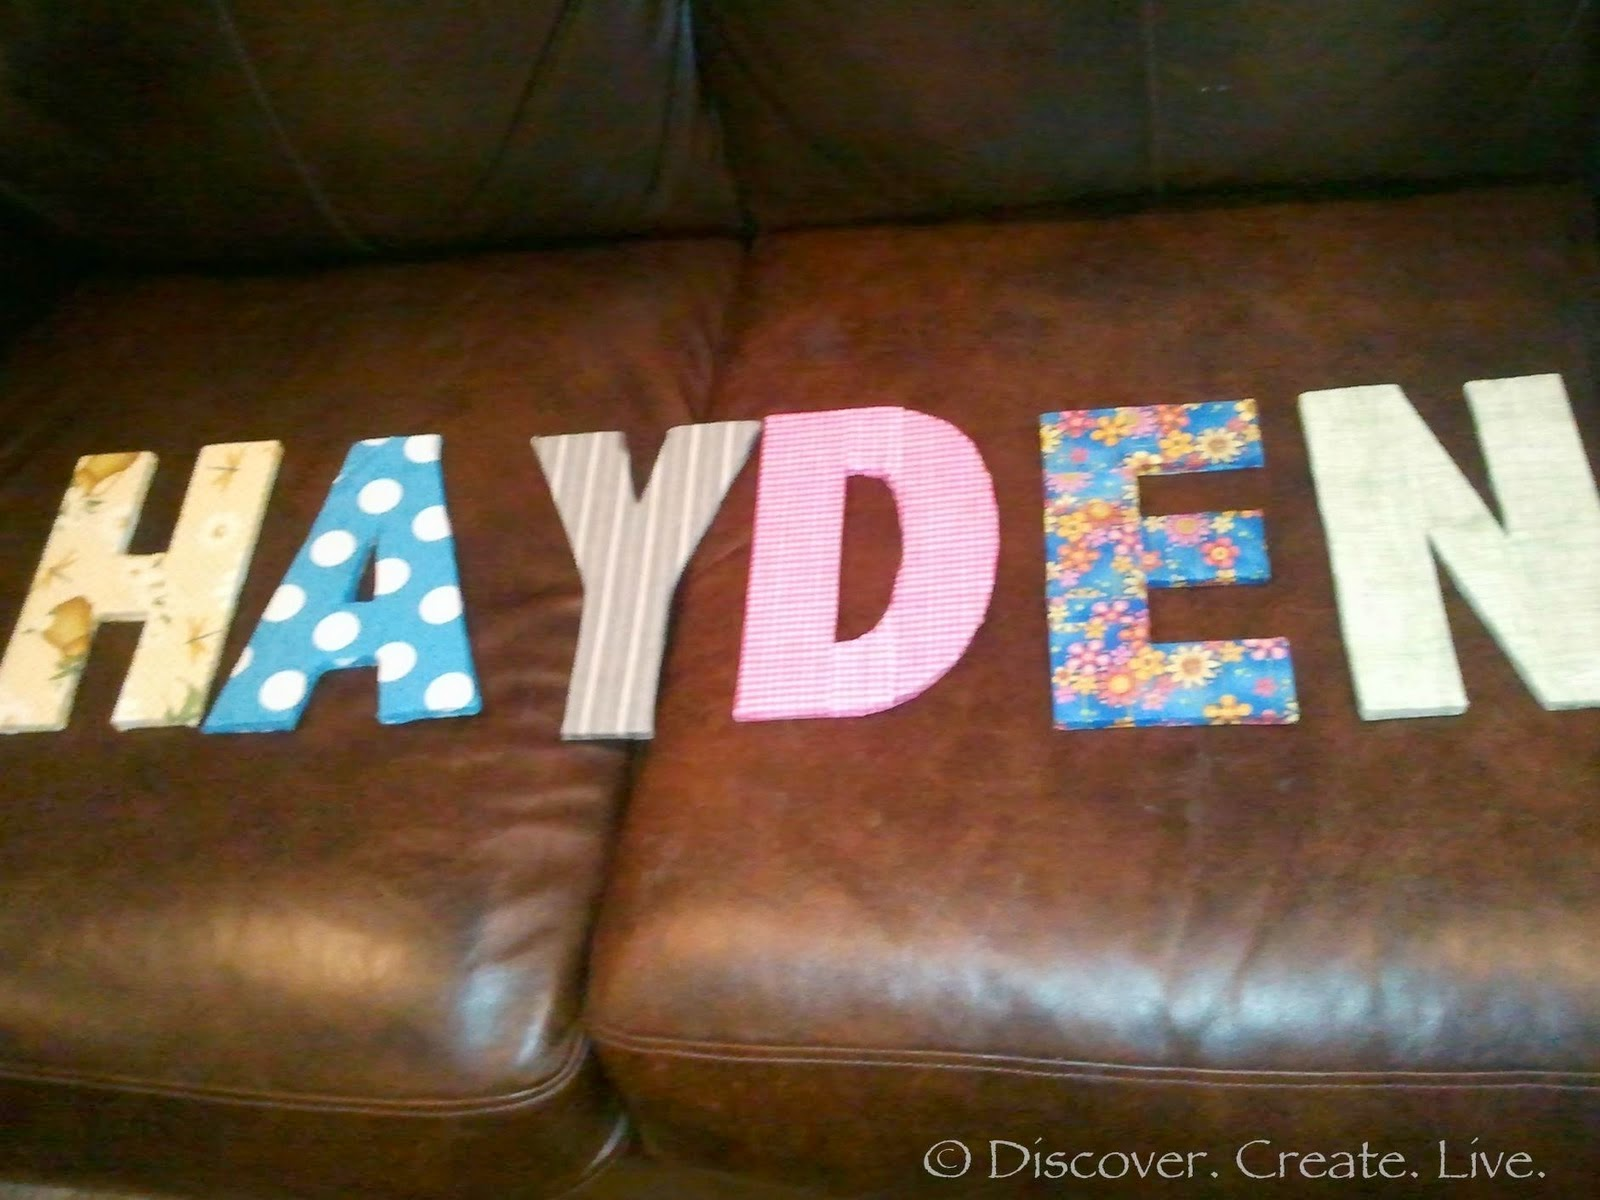 fabric and cardboard wall letters diy craft projects fabric and cardboard wall letters diy craft projects 715